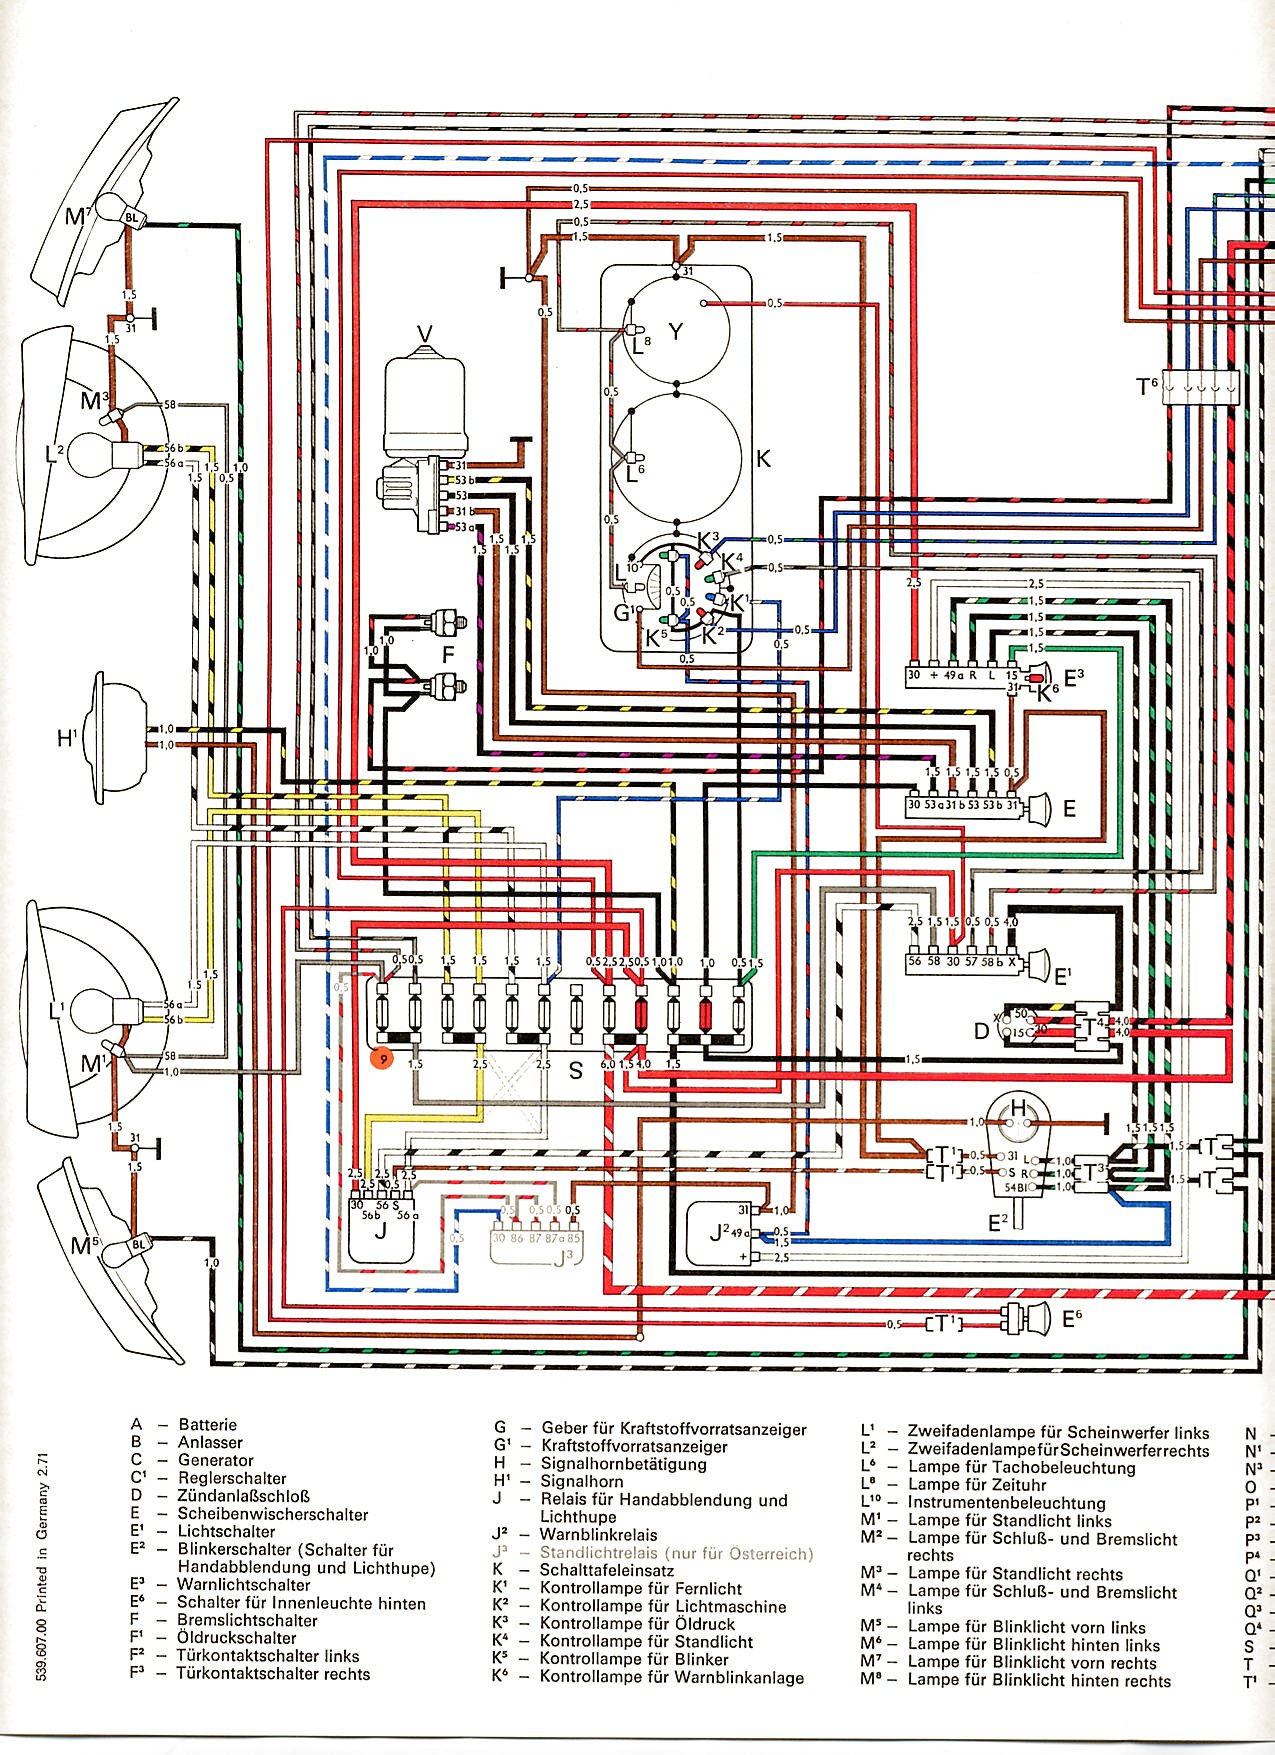 vintagebus com vw bus and other wiring diagrams rh vintagebus com 1974 VW Beetle Wiring Diagram 1964 VW Beetle Convertible